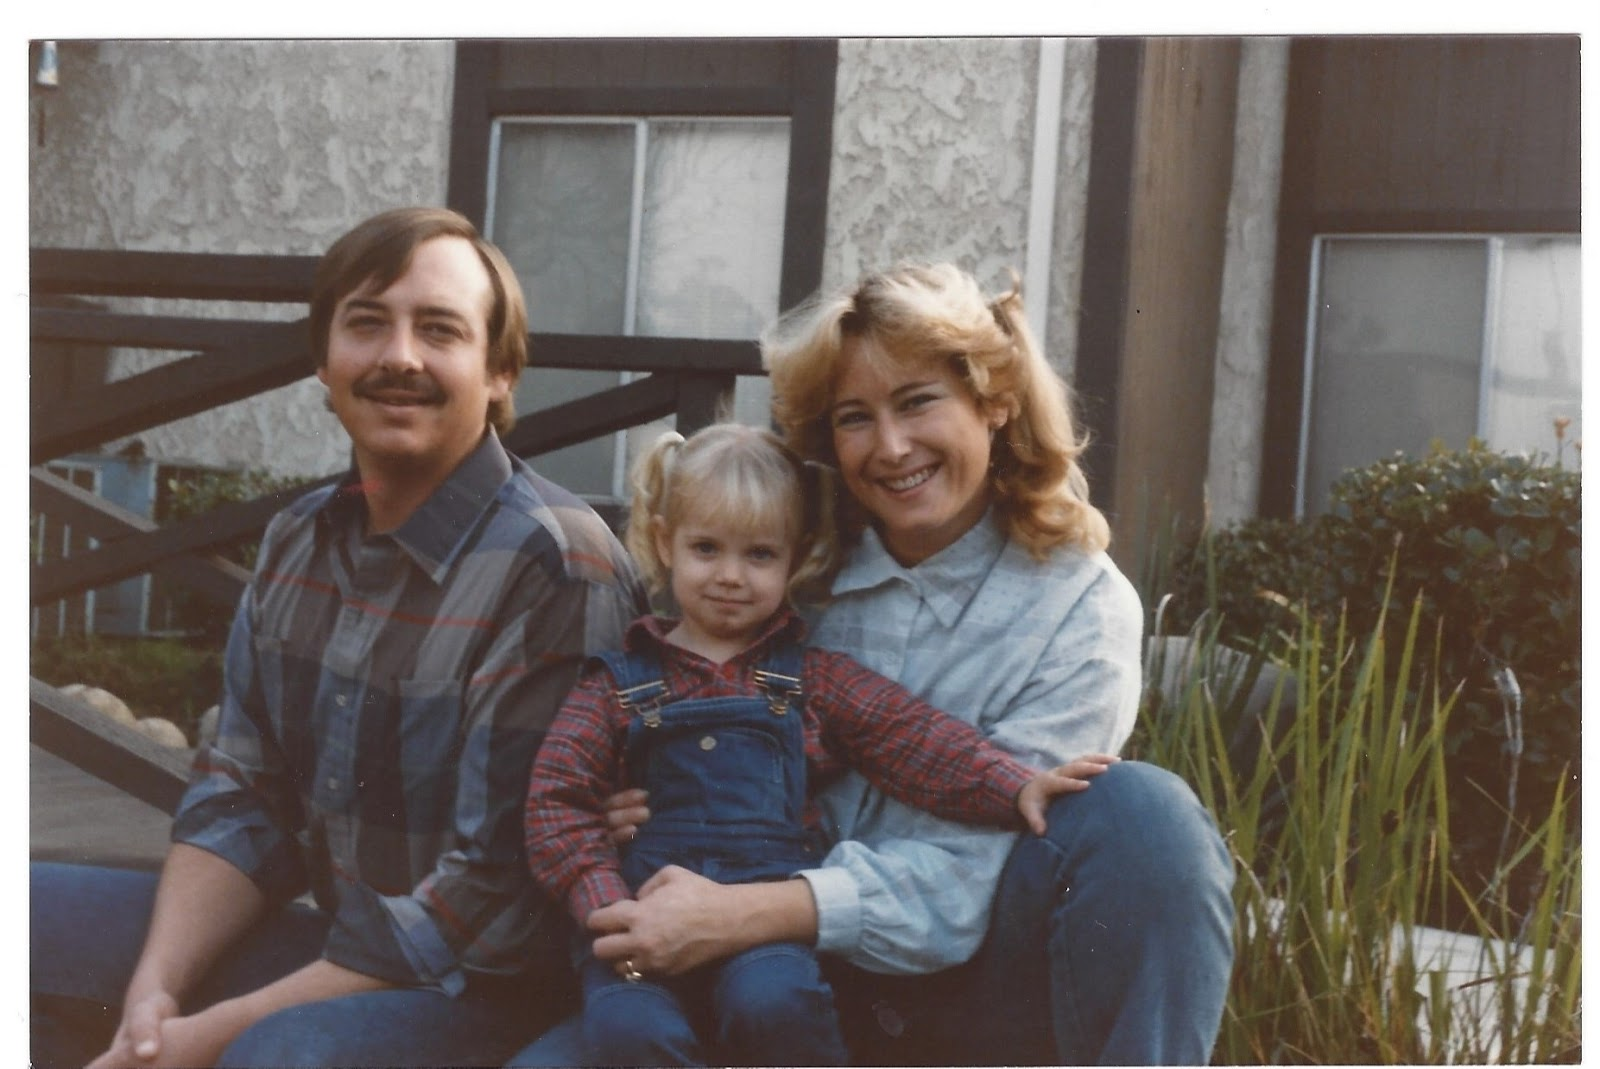 Heidi, as a young girl, with her parents.